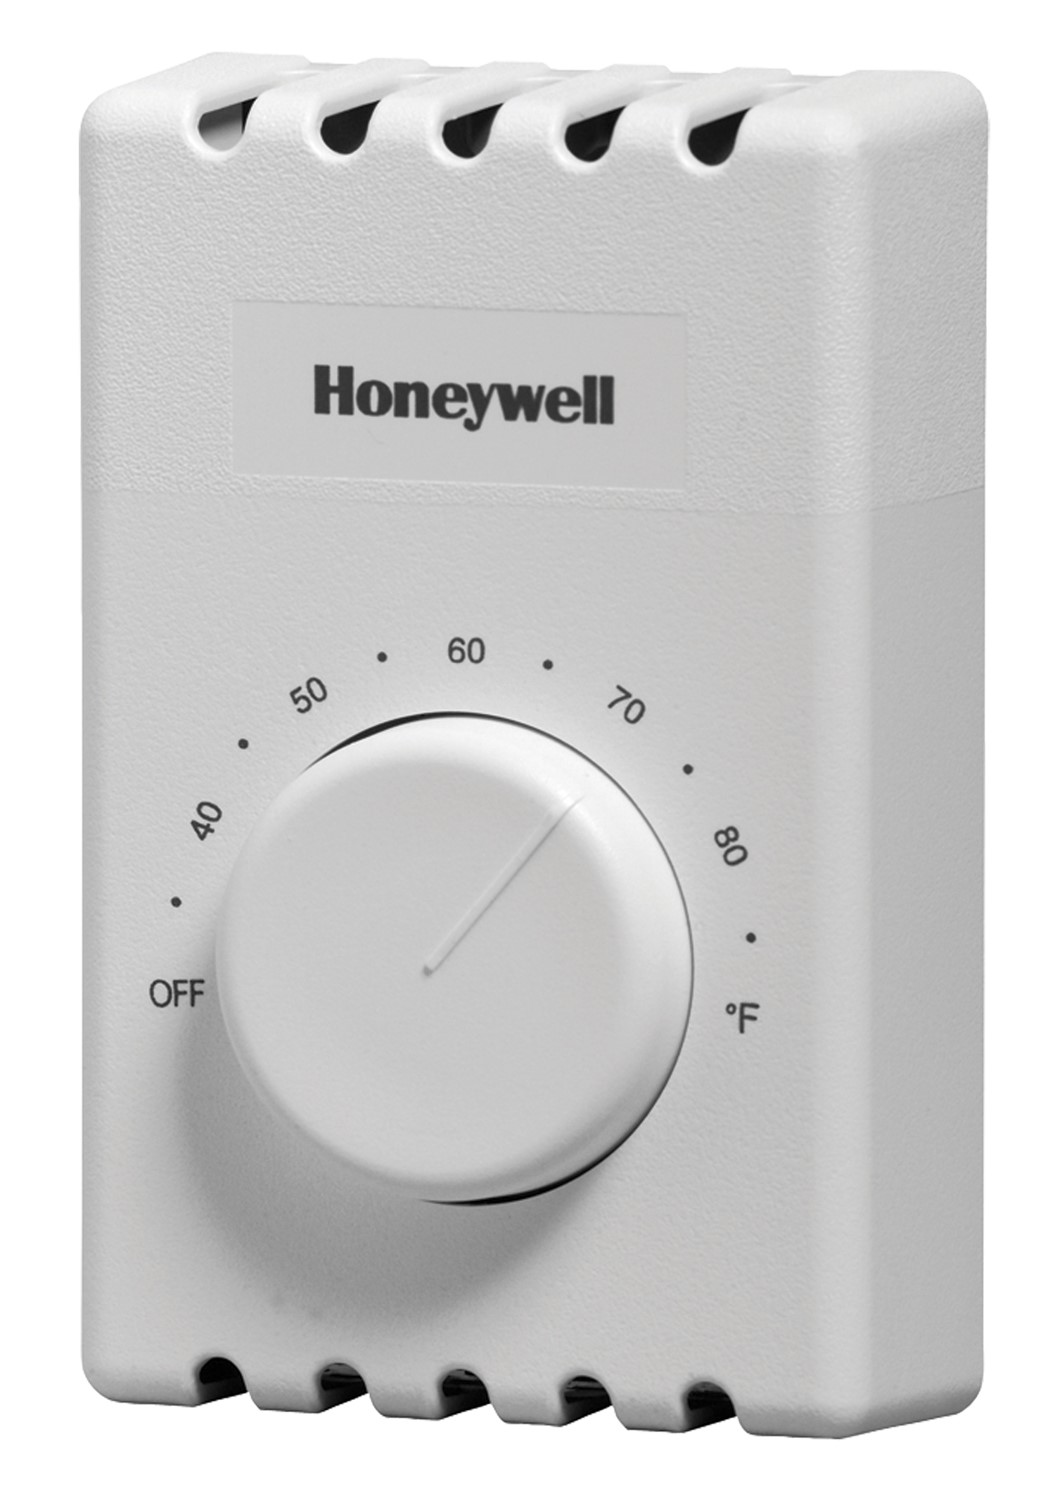 hight resolution of honeywell thermostats manual electric baseboard thermostat whites ct410b walmart com